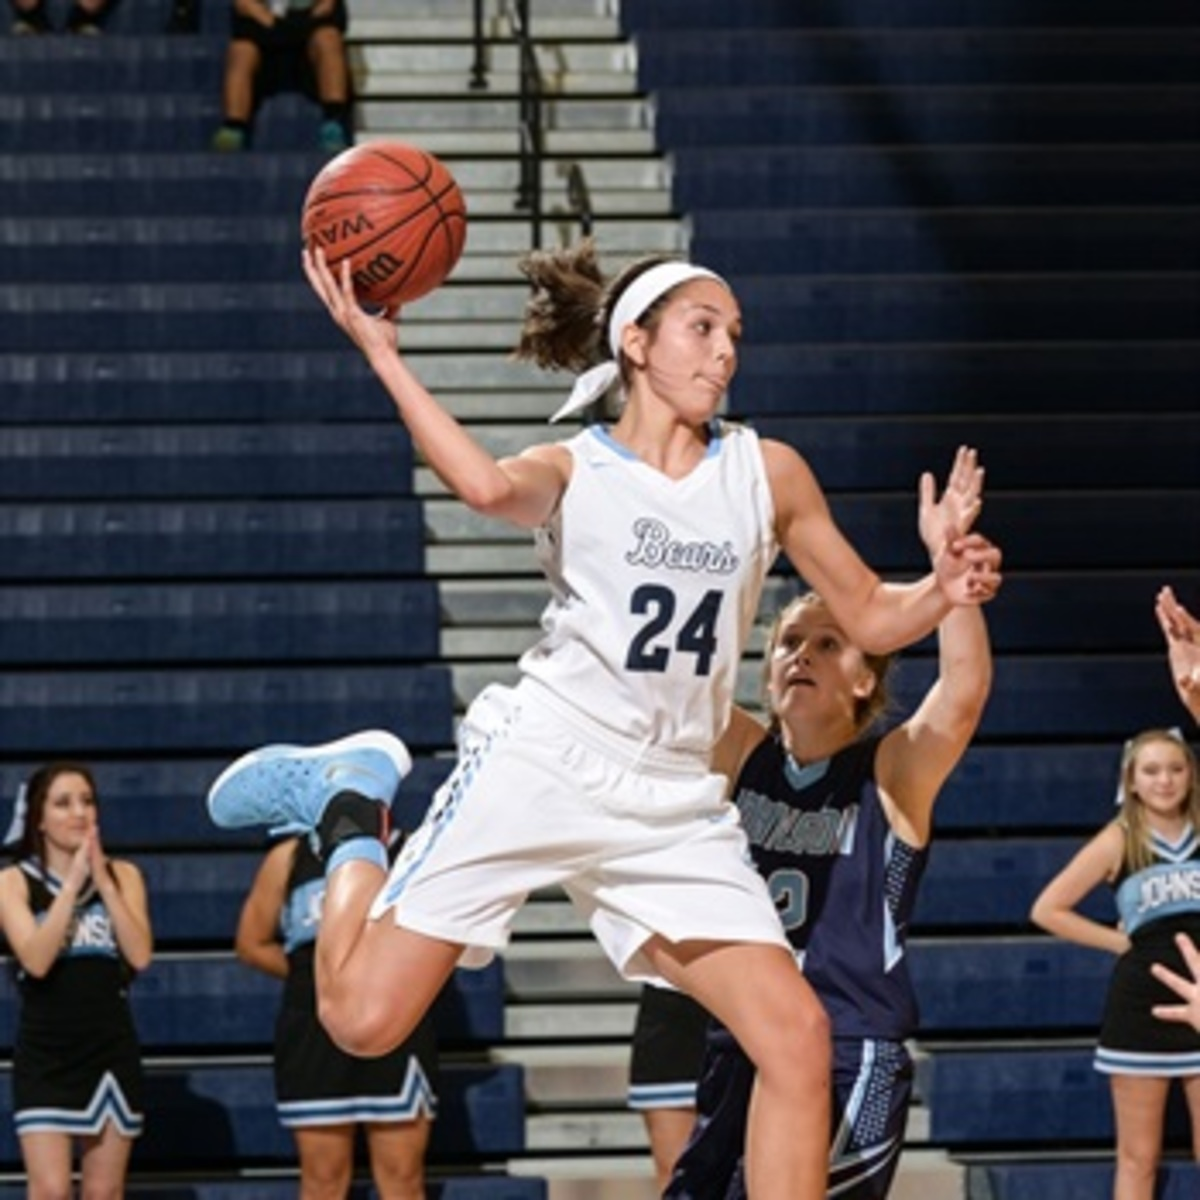 Sierra Sieracki playing basketball this past season.